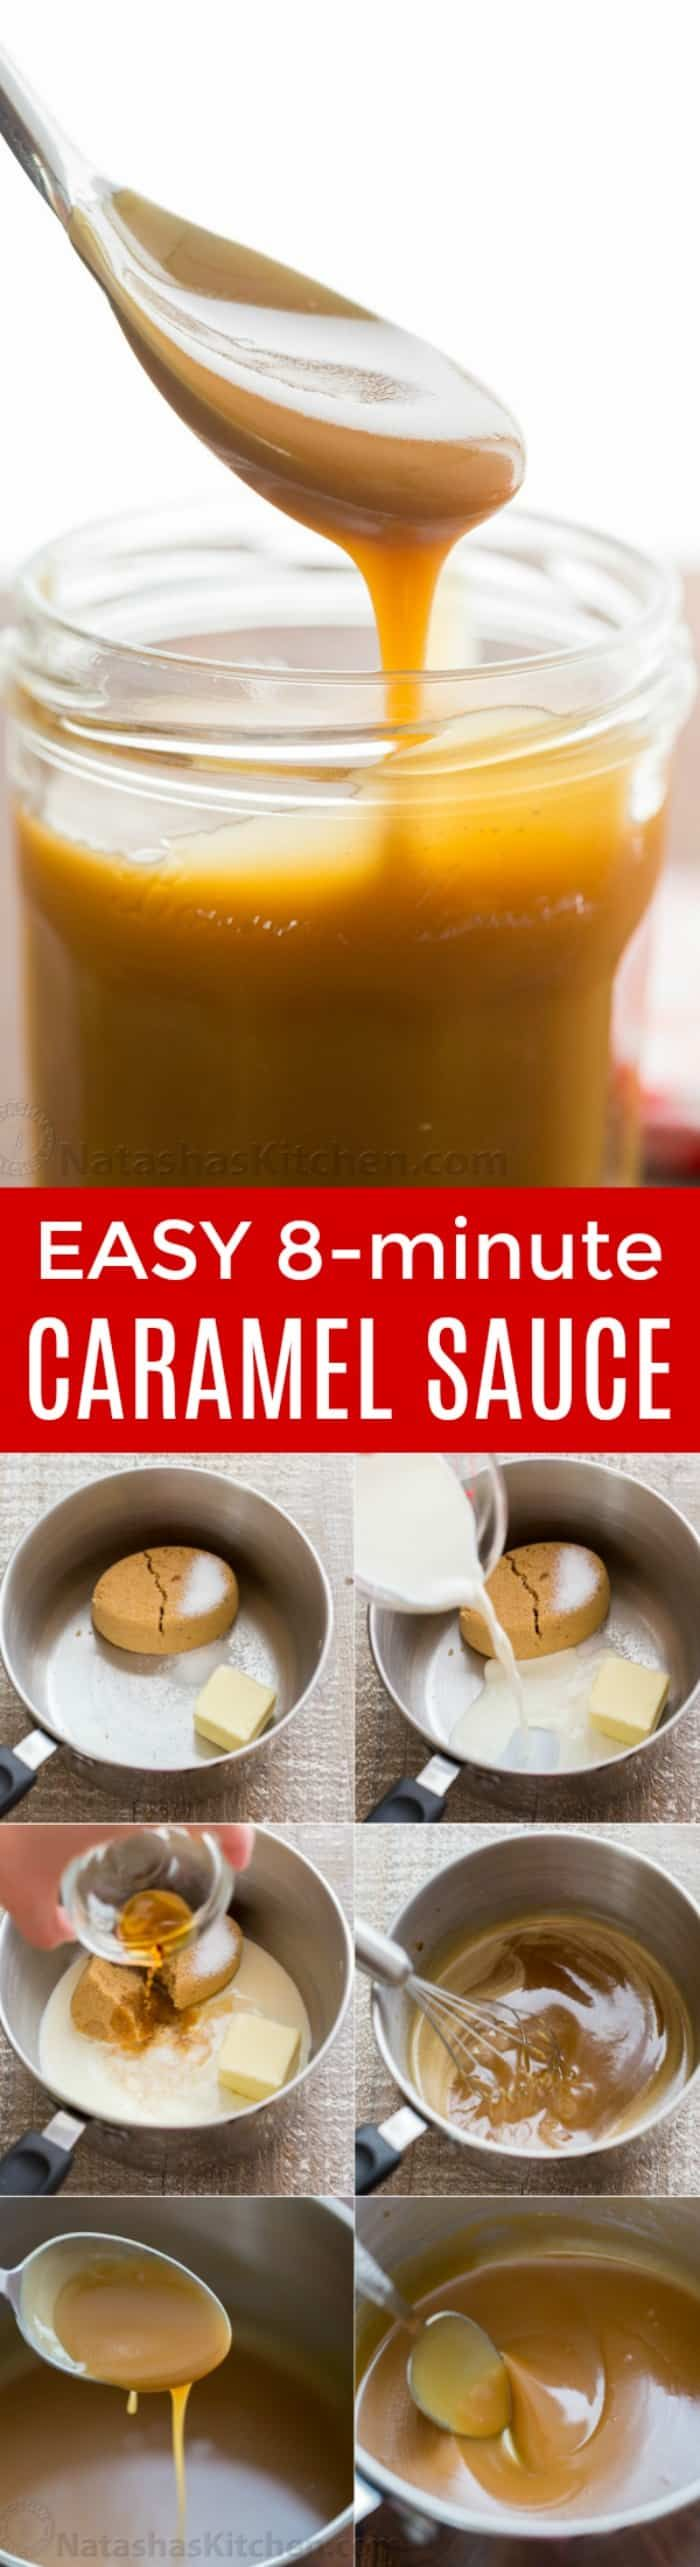 Homemade caramel sauce is so simple, you'll never want store-bought caramel sauce again! Easy 1-step, 5-ingredient salted caramel sauce recipe. | natashaskitchen.com